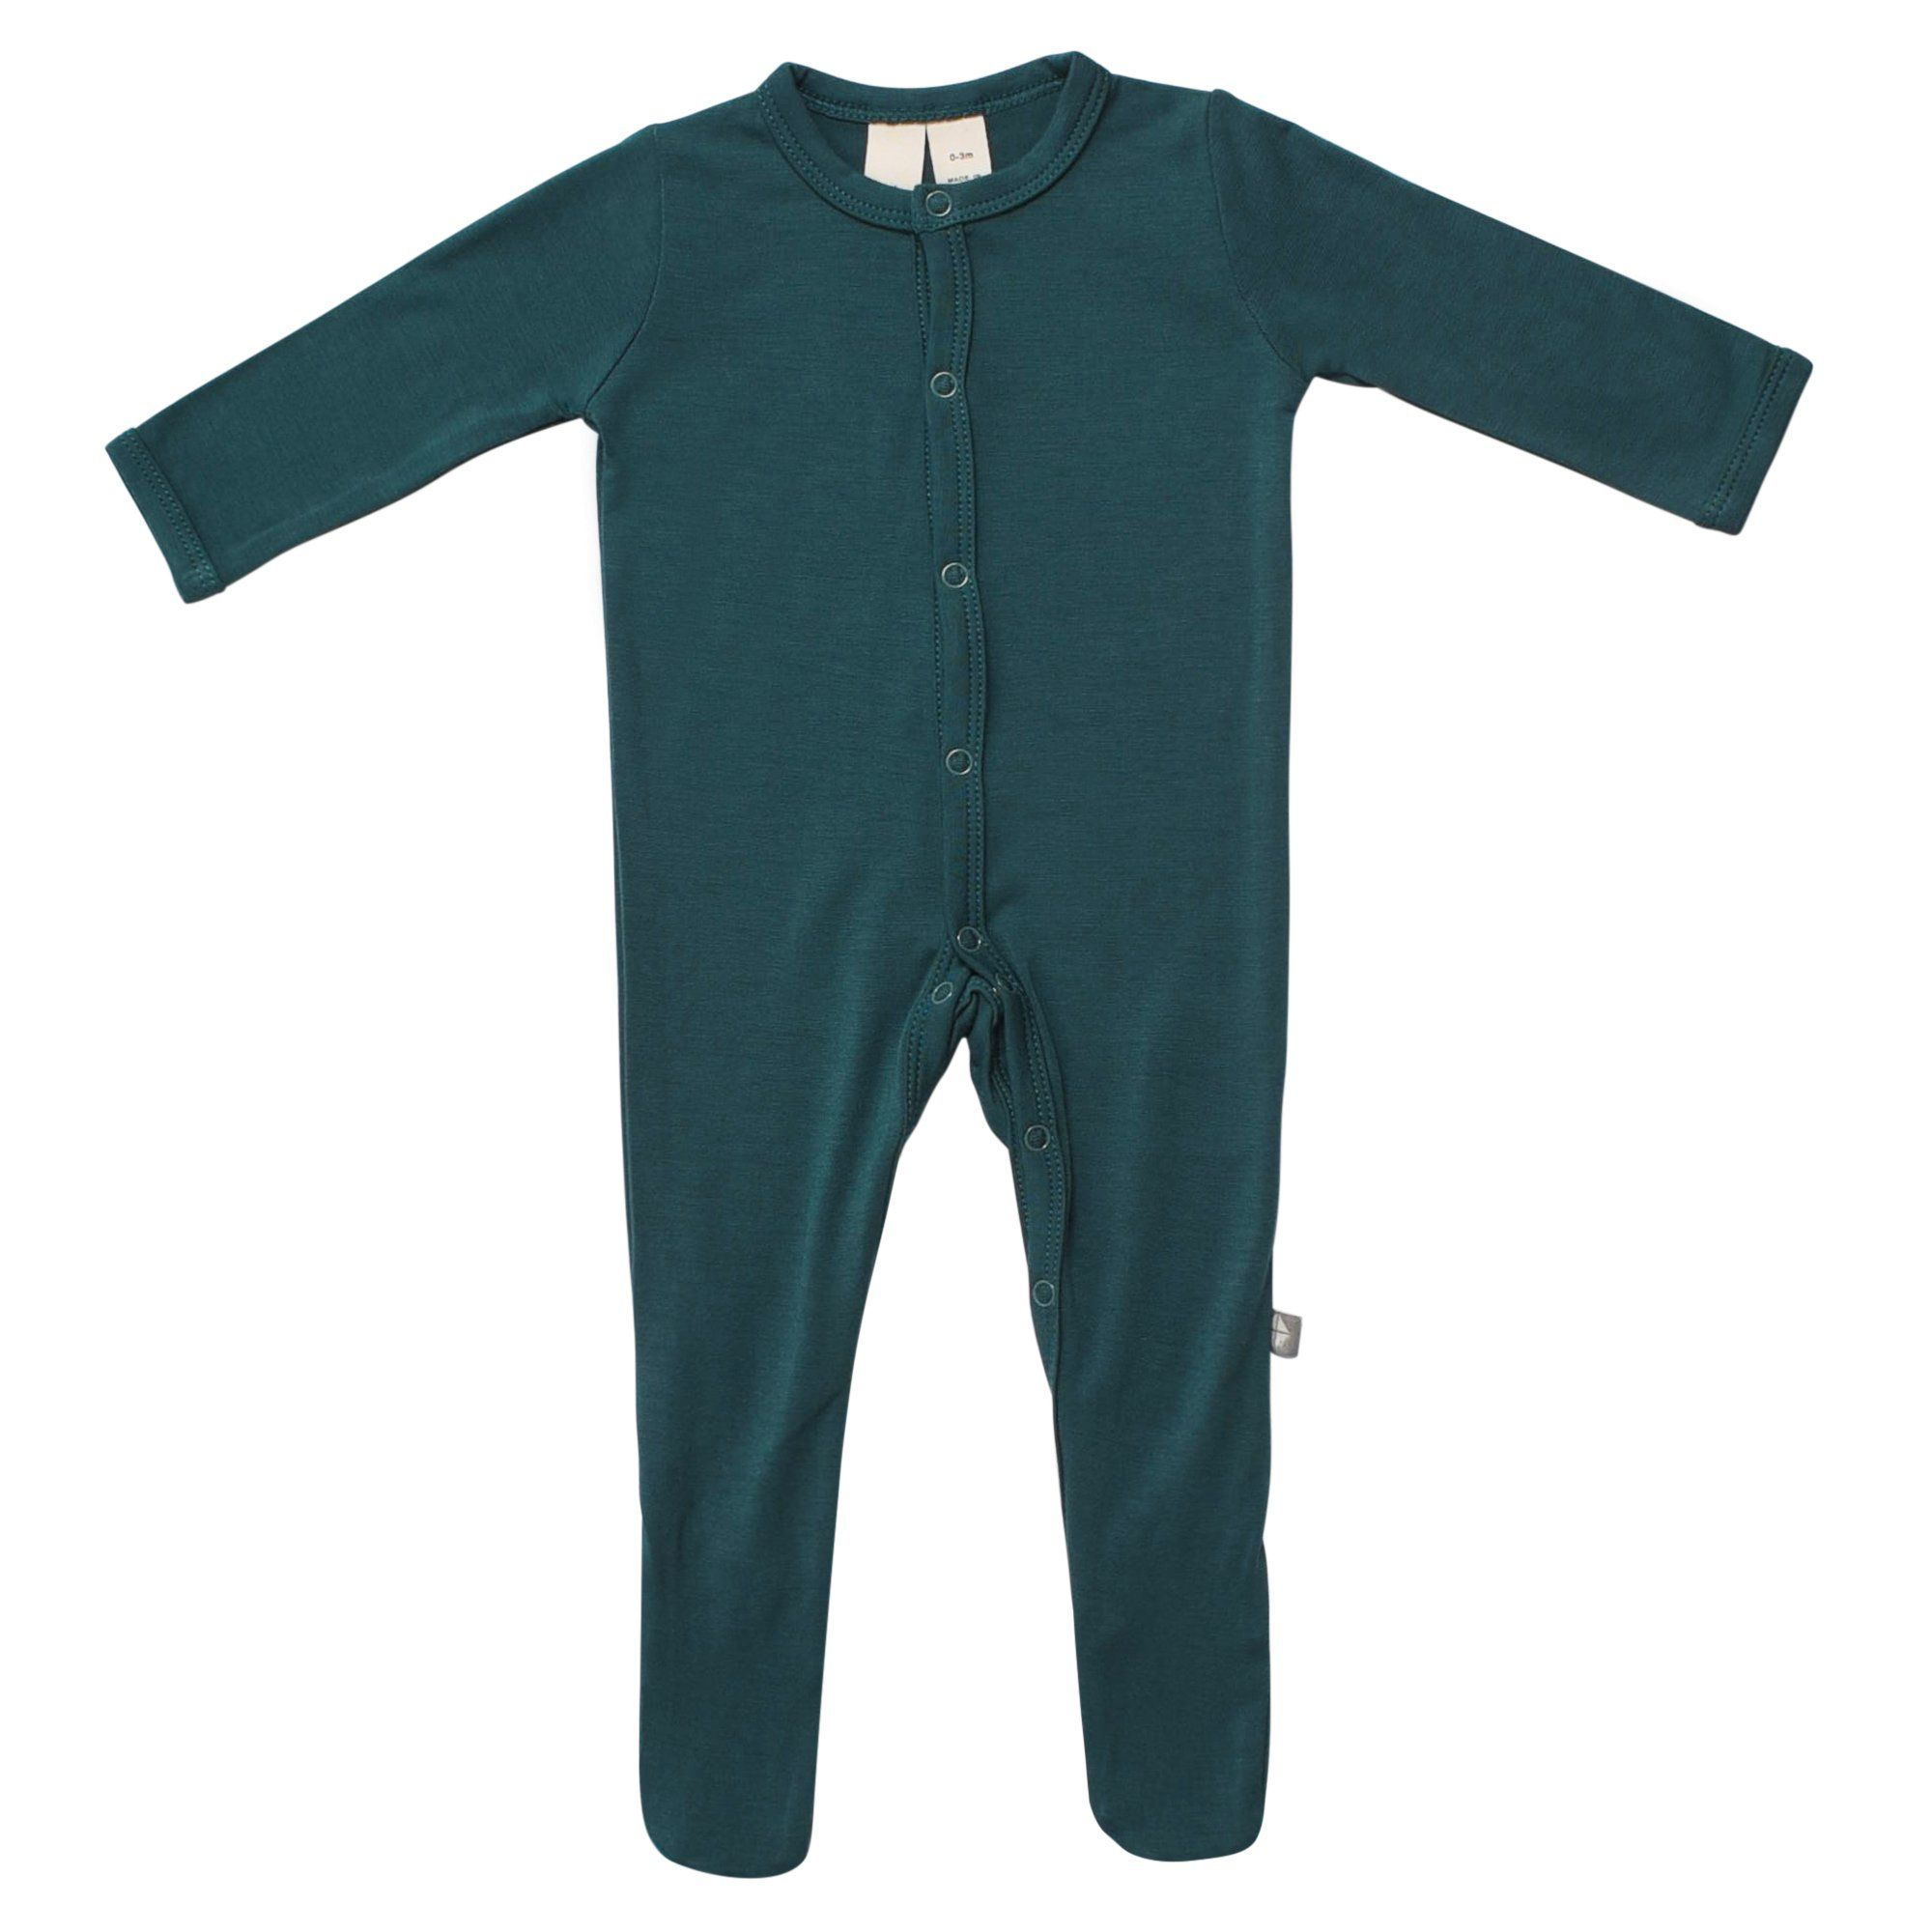 90b54e27a5 Footie in Emerald Baby Girl Fashion